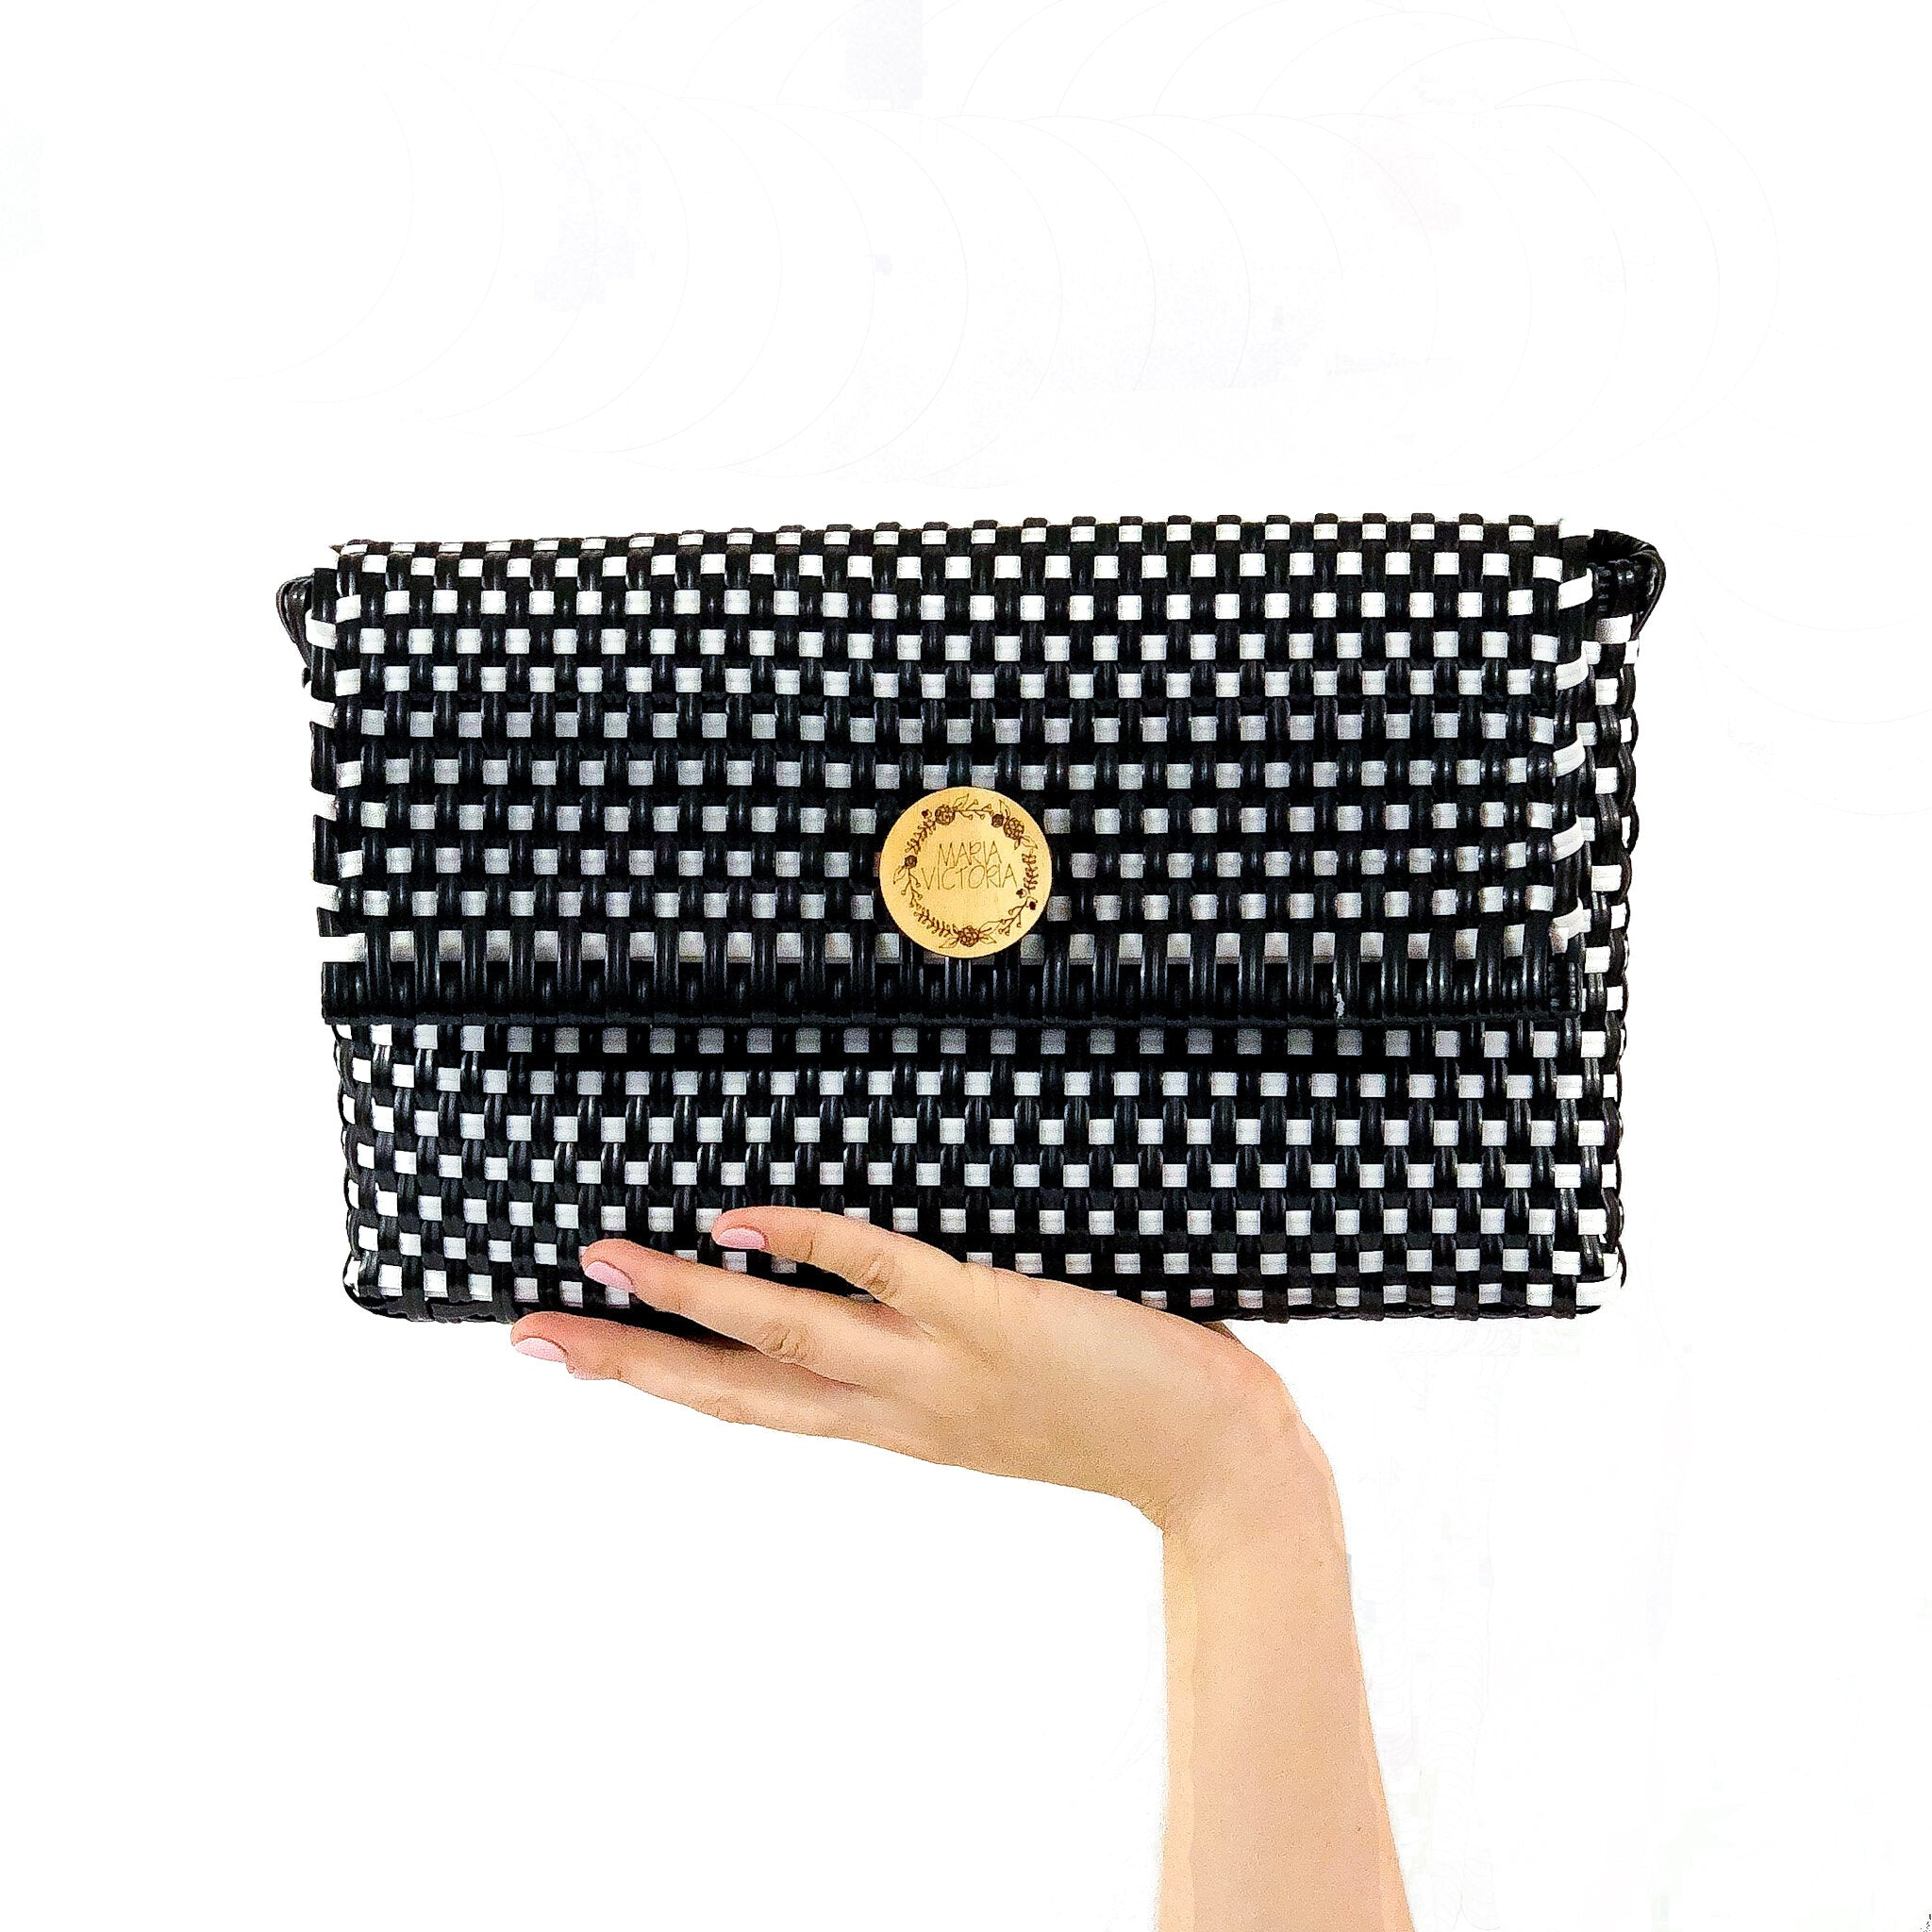 Handmade Mexican Clutch - Dear Diego - Checkers Black and White